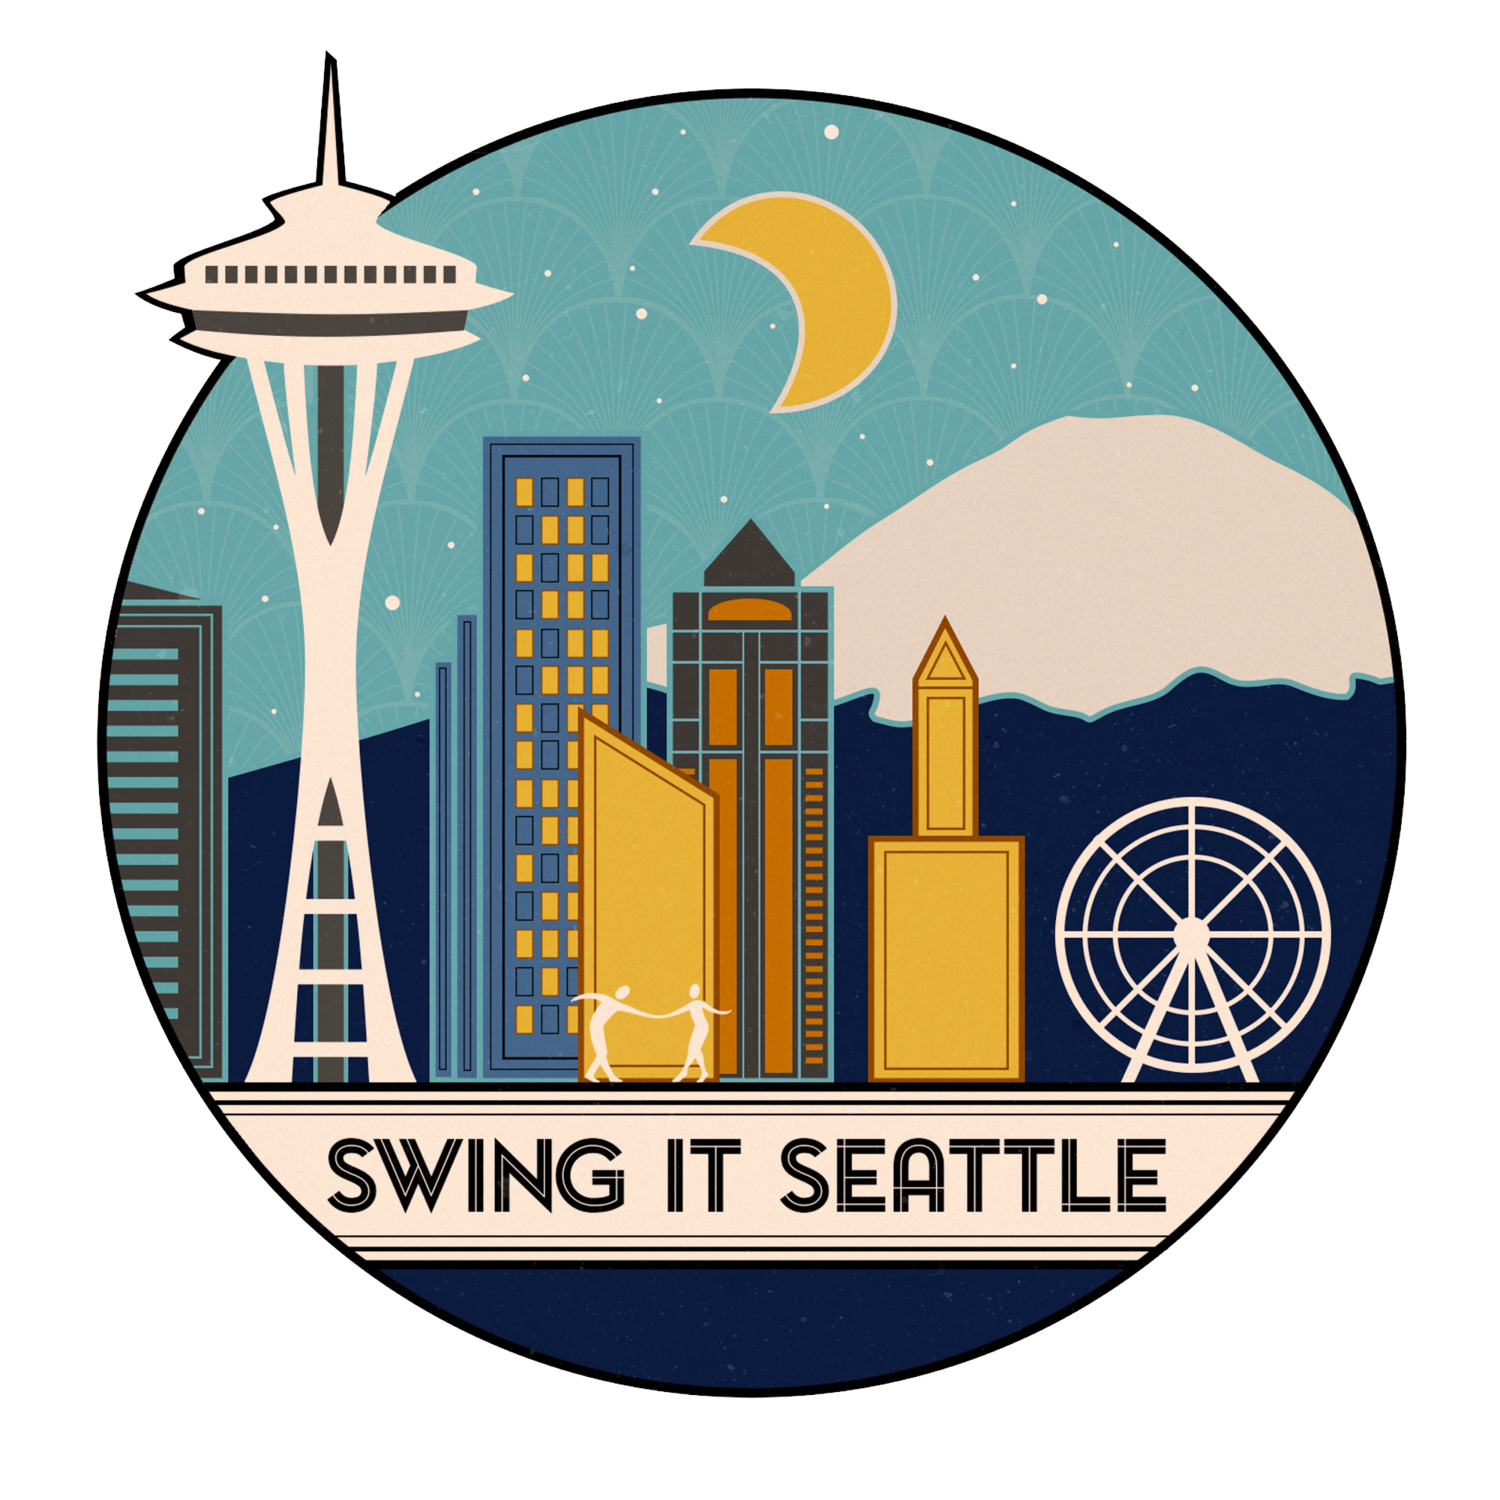 Swing It Seattle